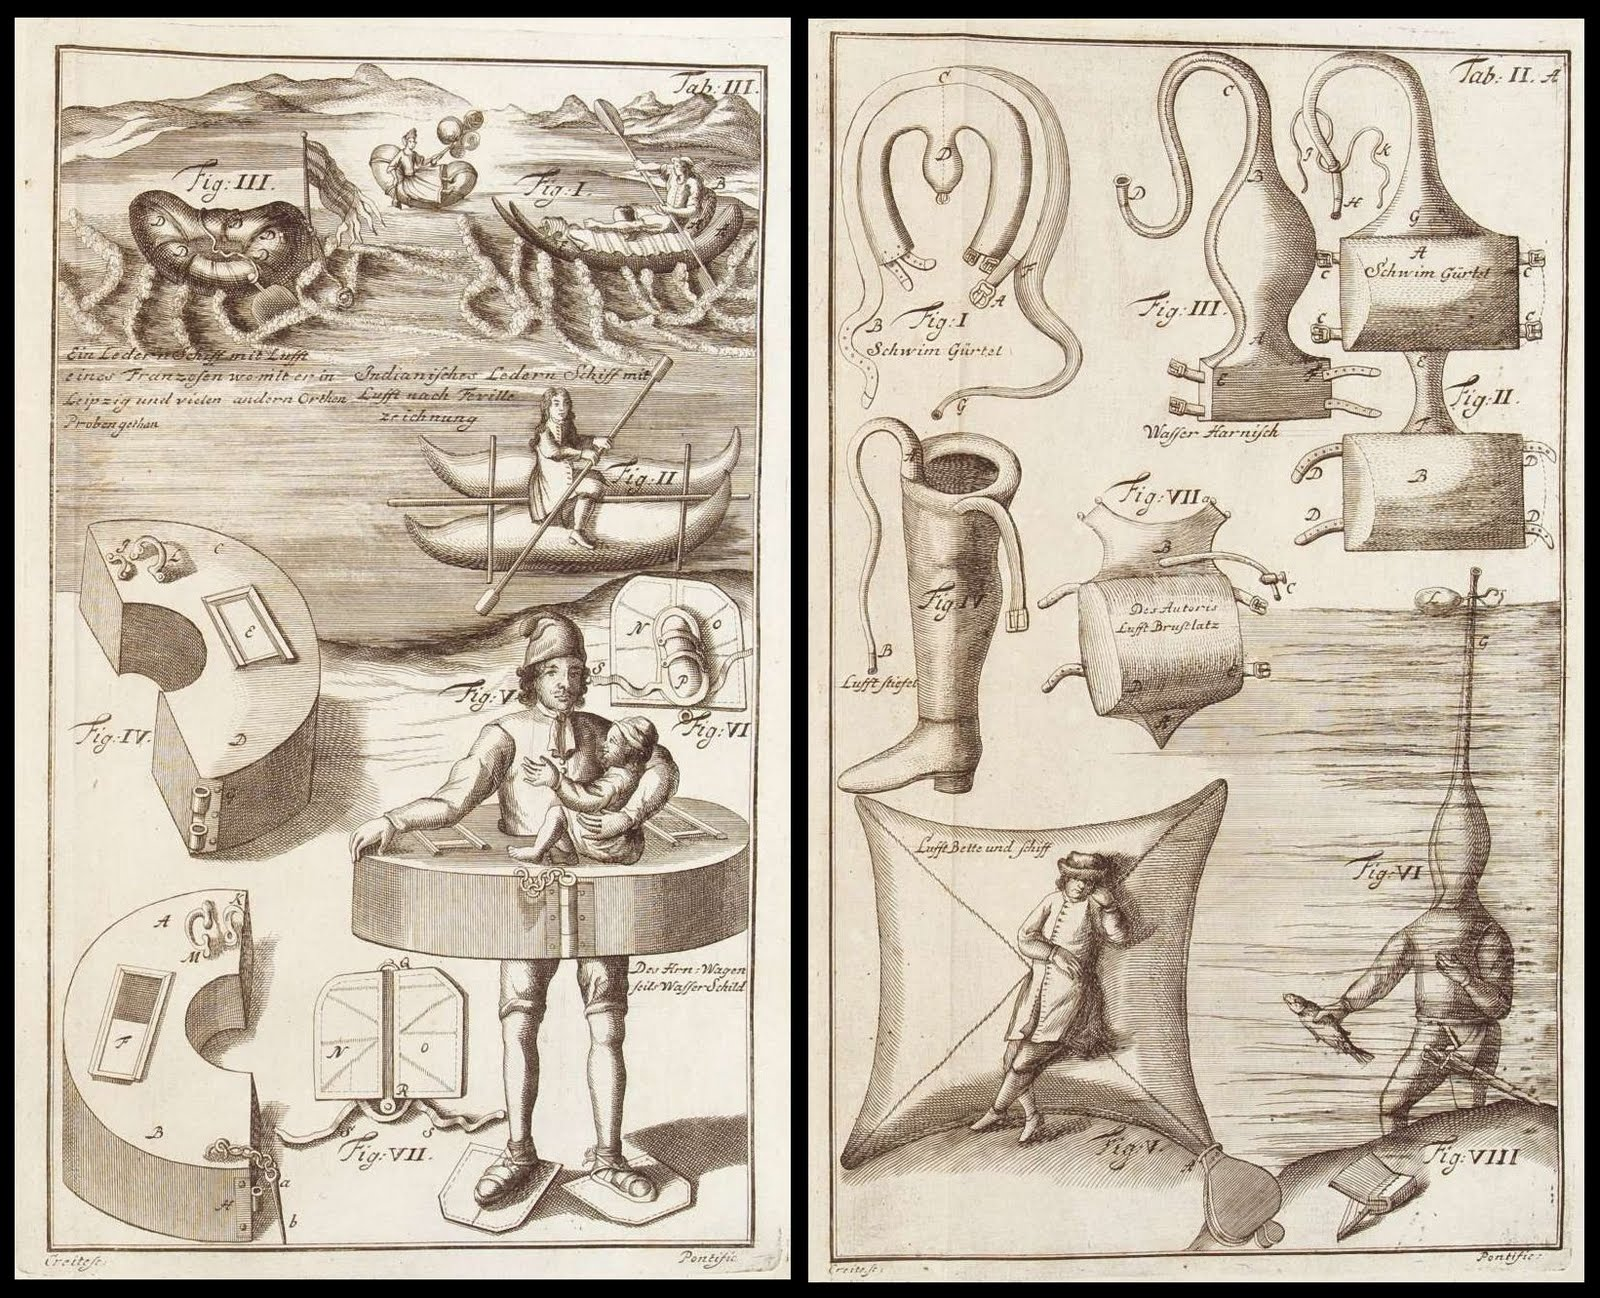 18th cent. engravings of scuba and flotation devices